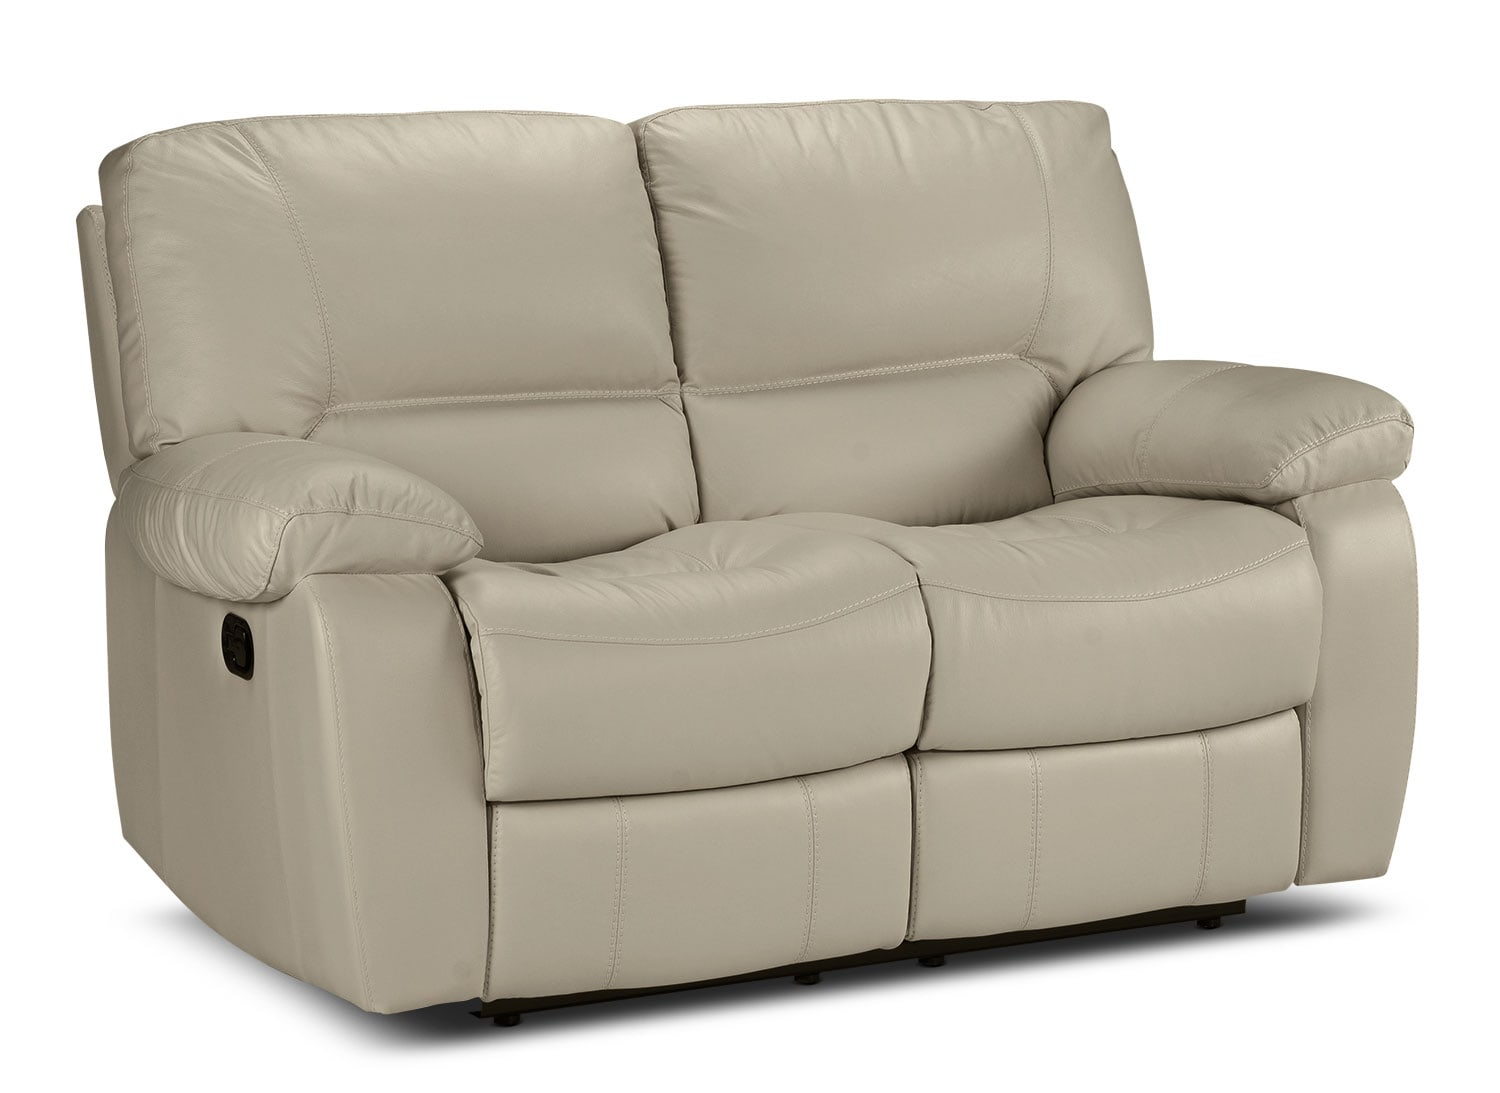 Piermont Reclining Loveseat - Silver Grey